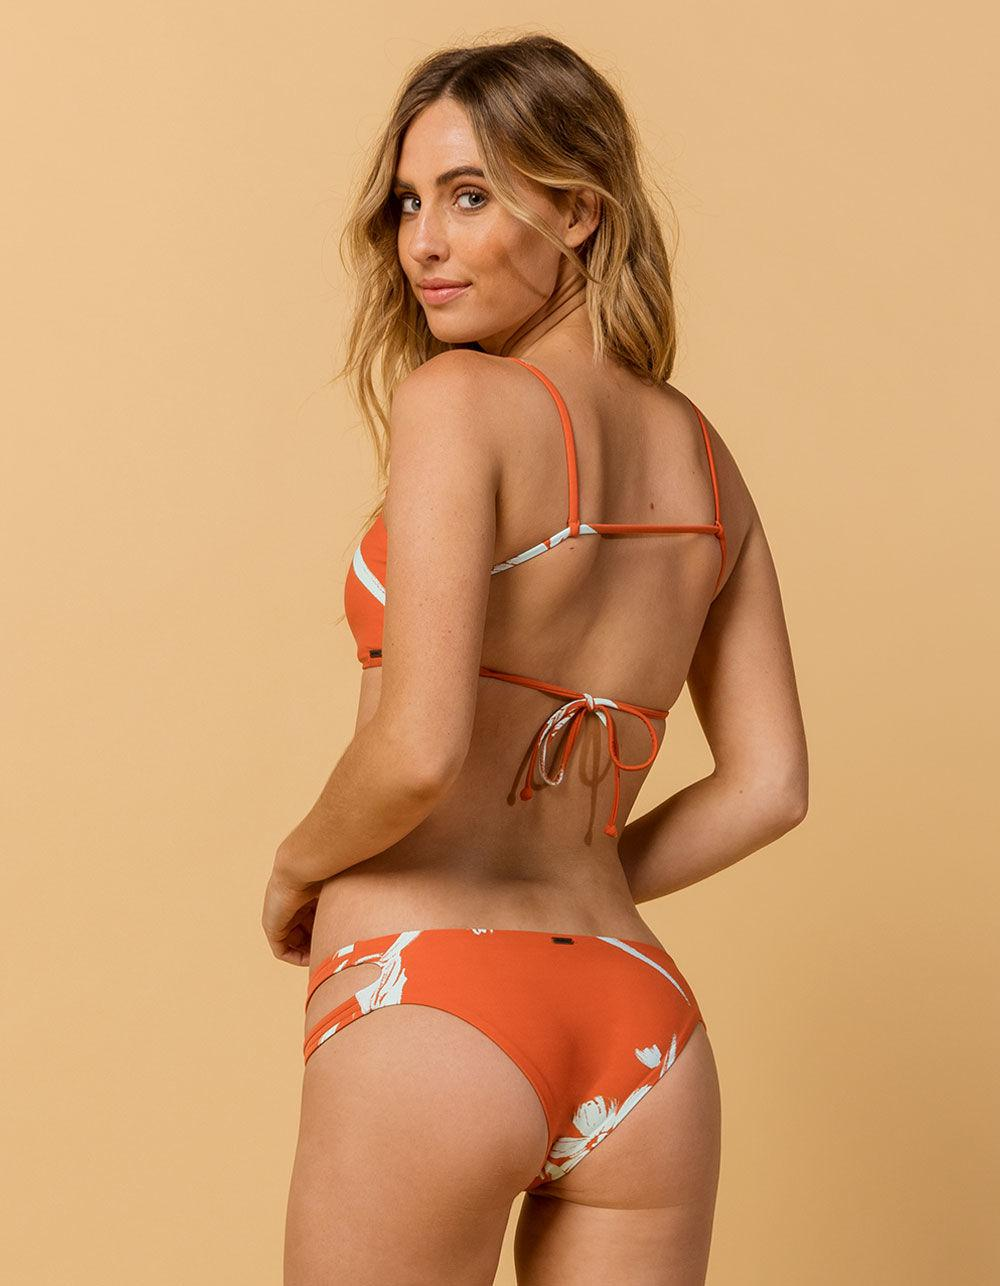 941c9eb47f7eb Lyst - O neill Sportswear Slater Cheeky Bikini Bottoms in Orange